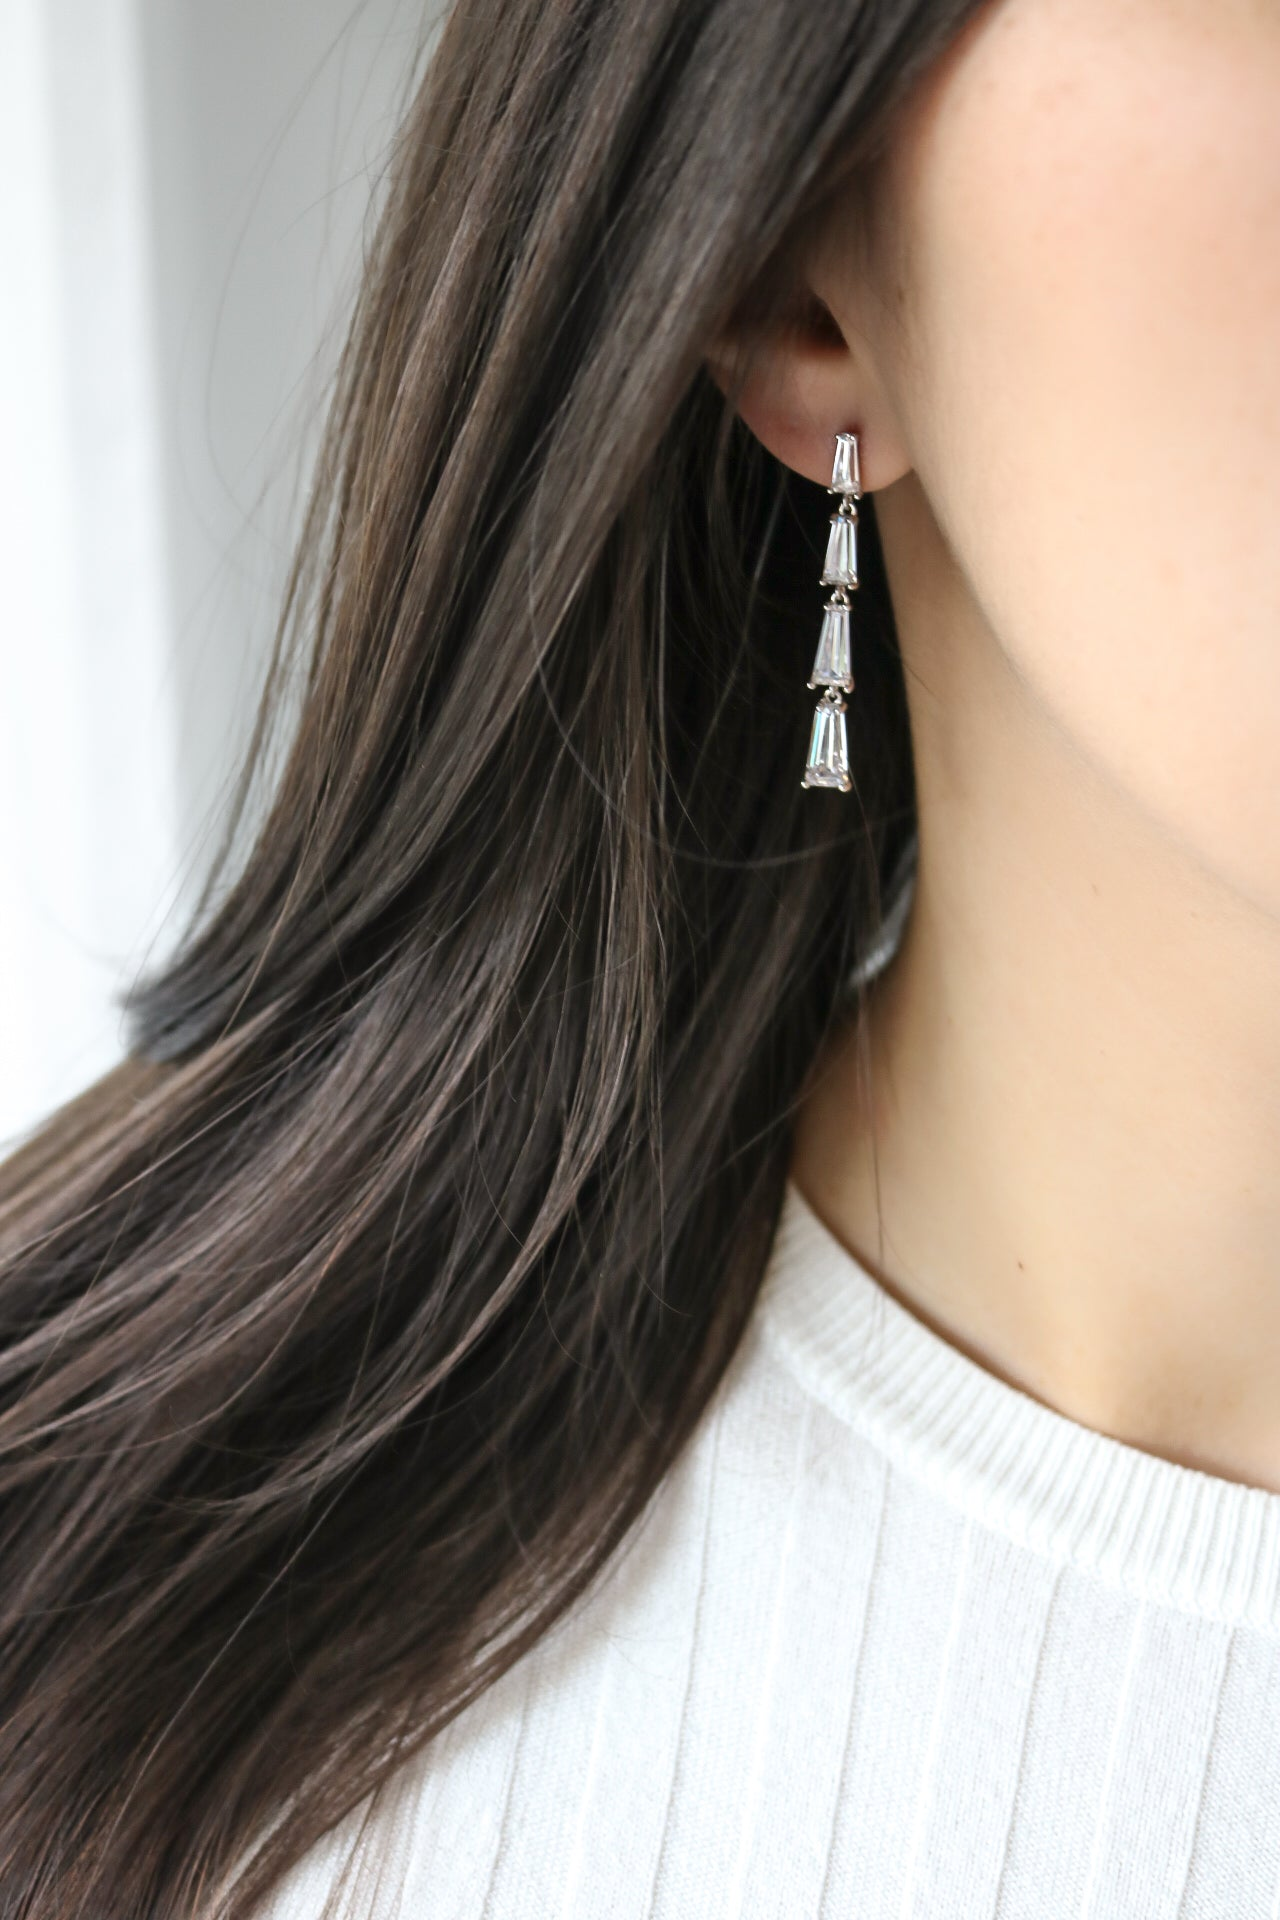 Violette Earrings